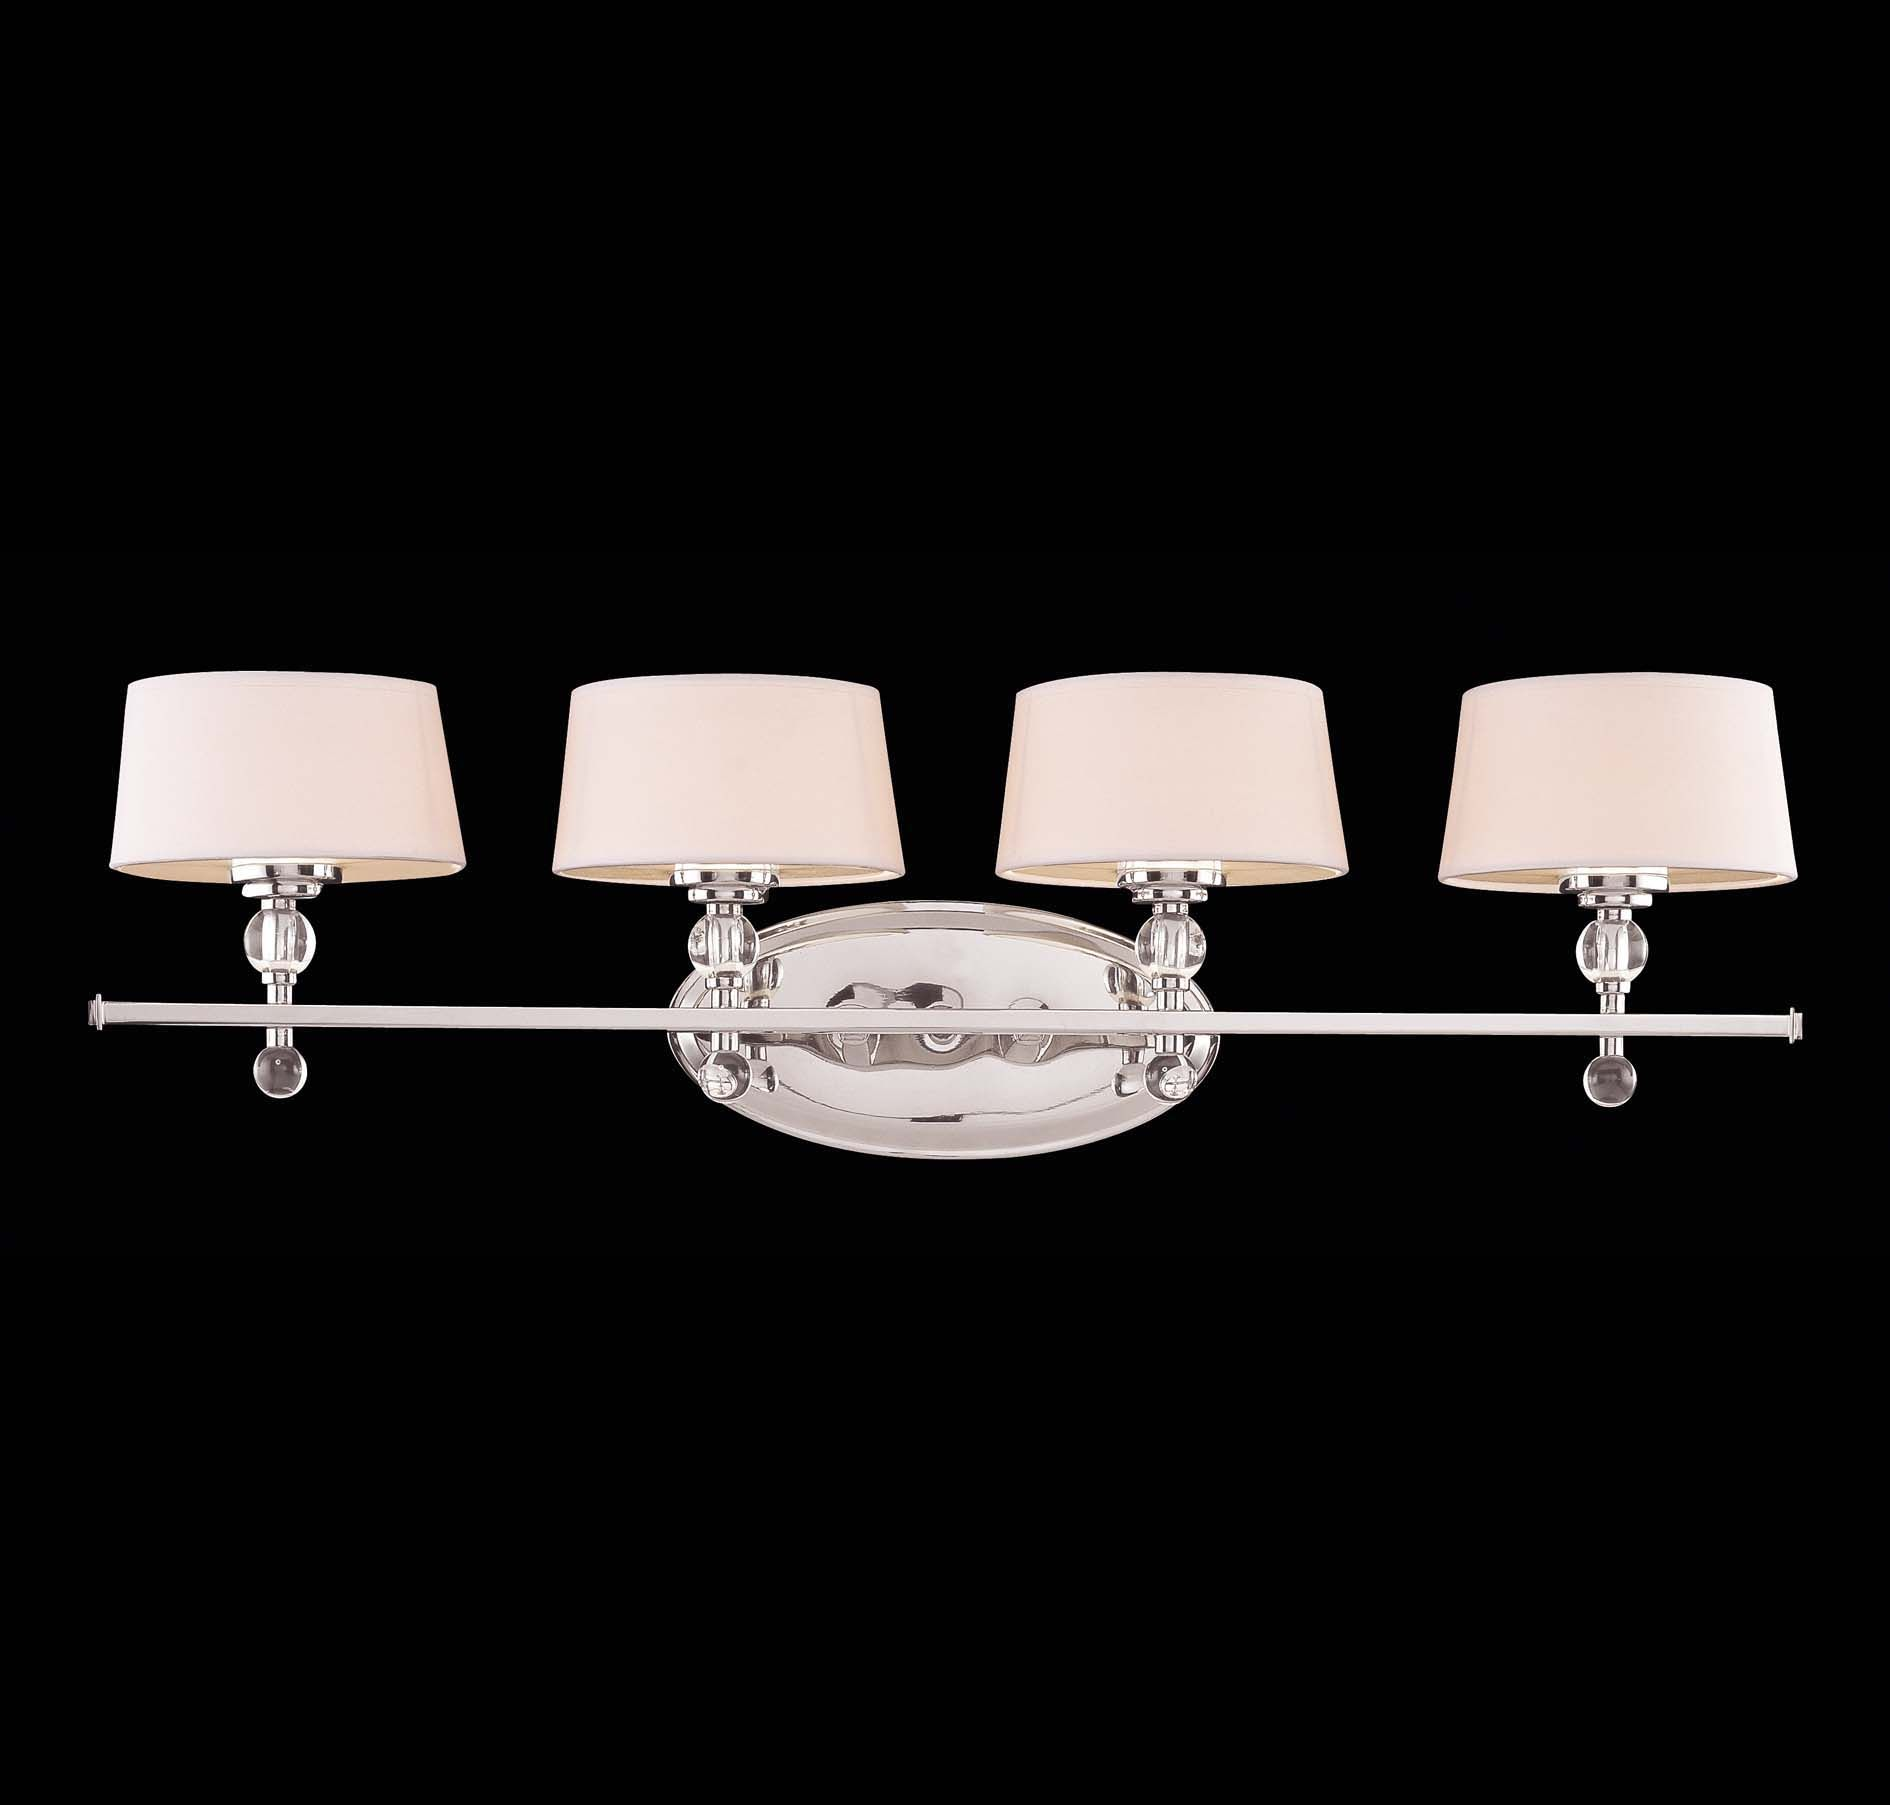 Murren Light Bath Bar Bath Lighting Products Savoy House - Savoy bathroom light fixtures